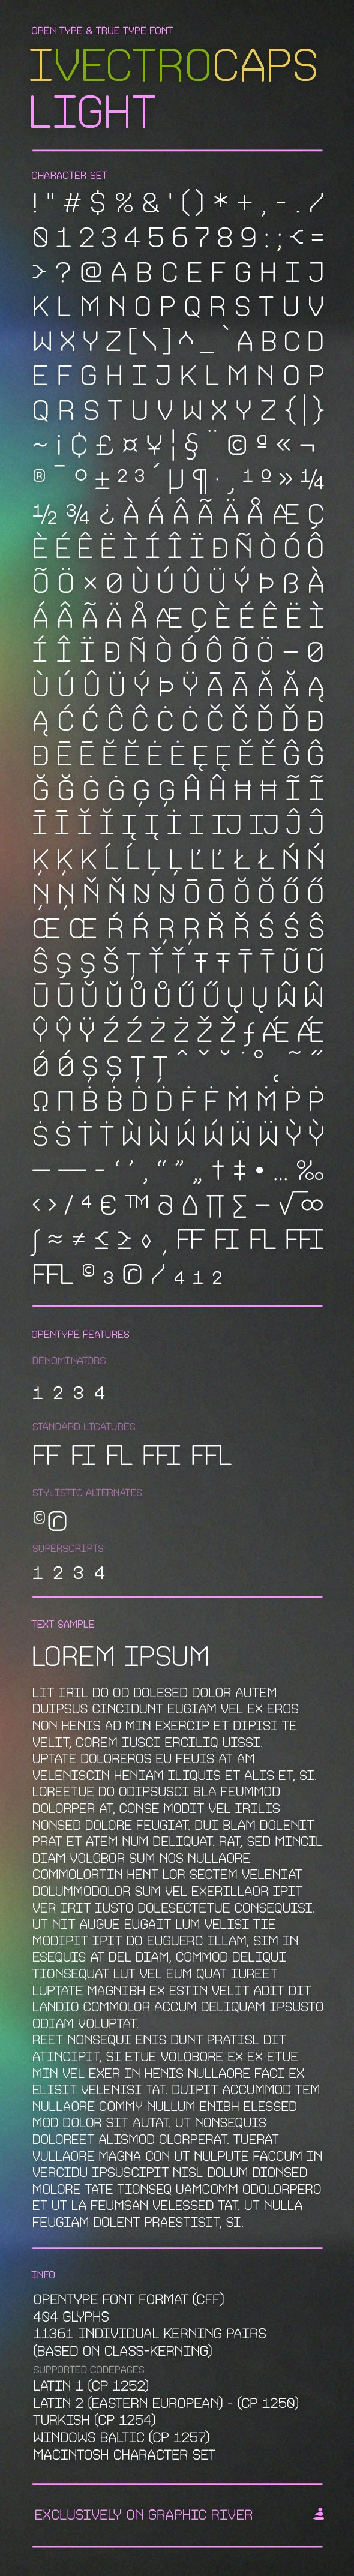 iVectroCaps Light Font - Miscellaneous Sans-Serif